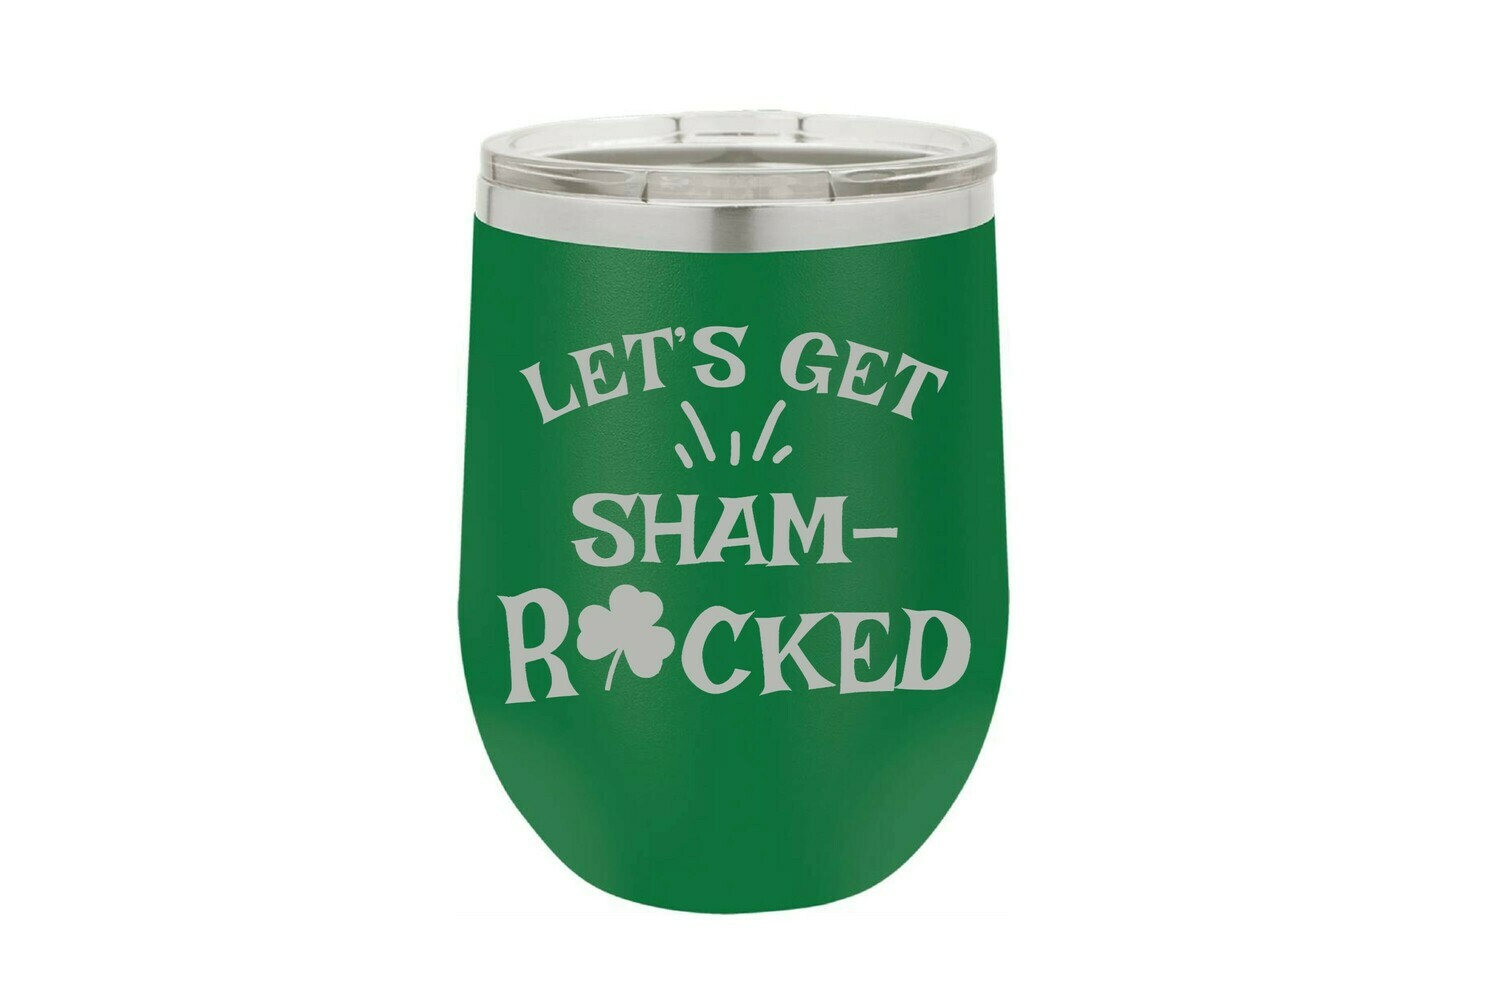 Let's Get Sham-Rocked Insulated Tumbler